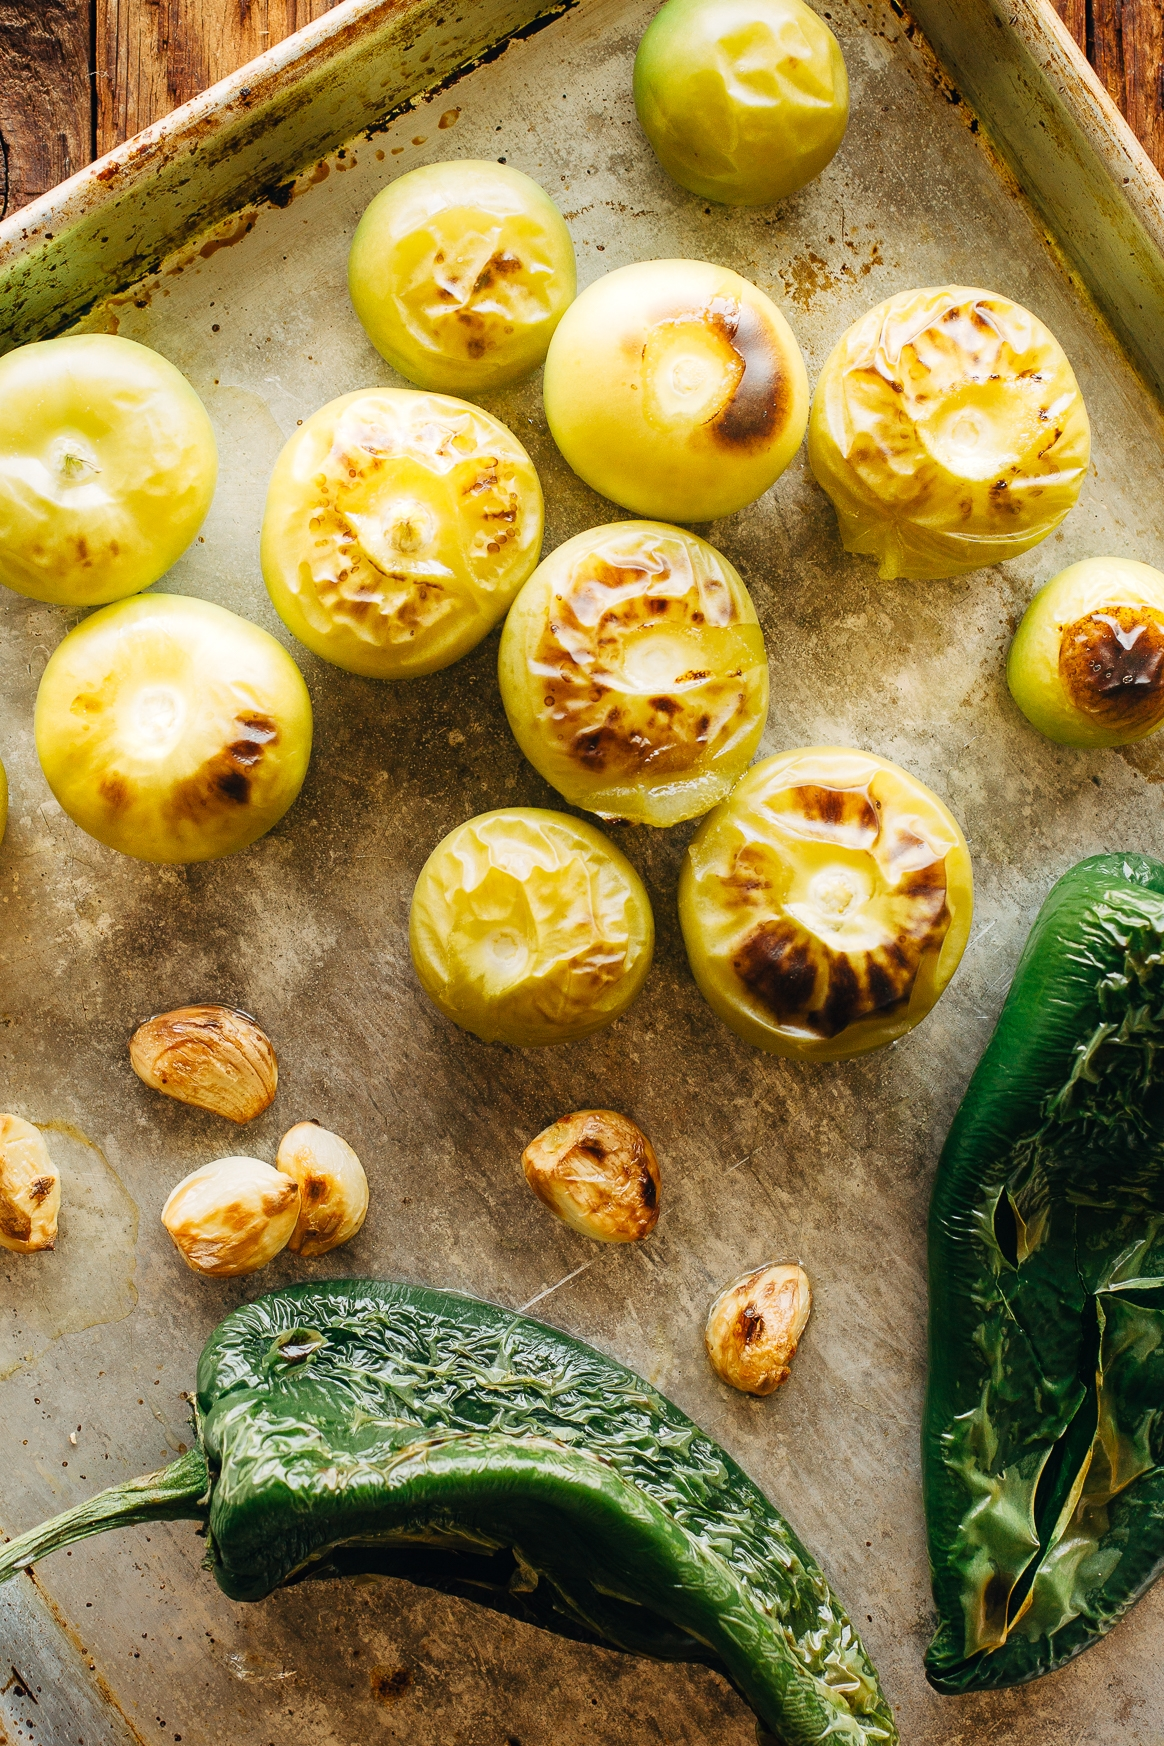 Roasted Tomatillos, Poblano Chiles and Garlic